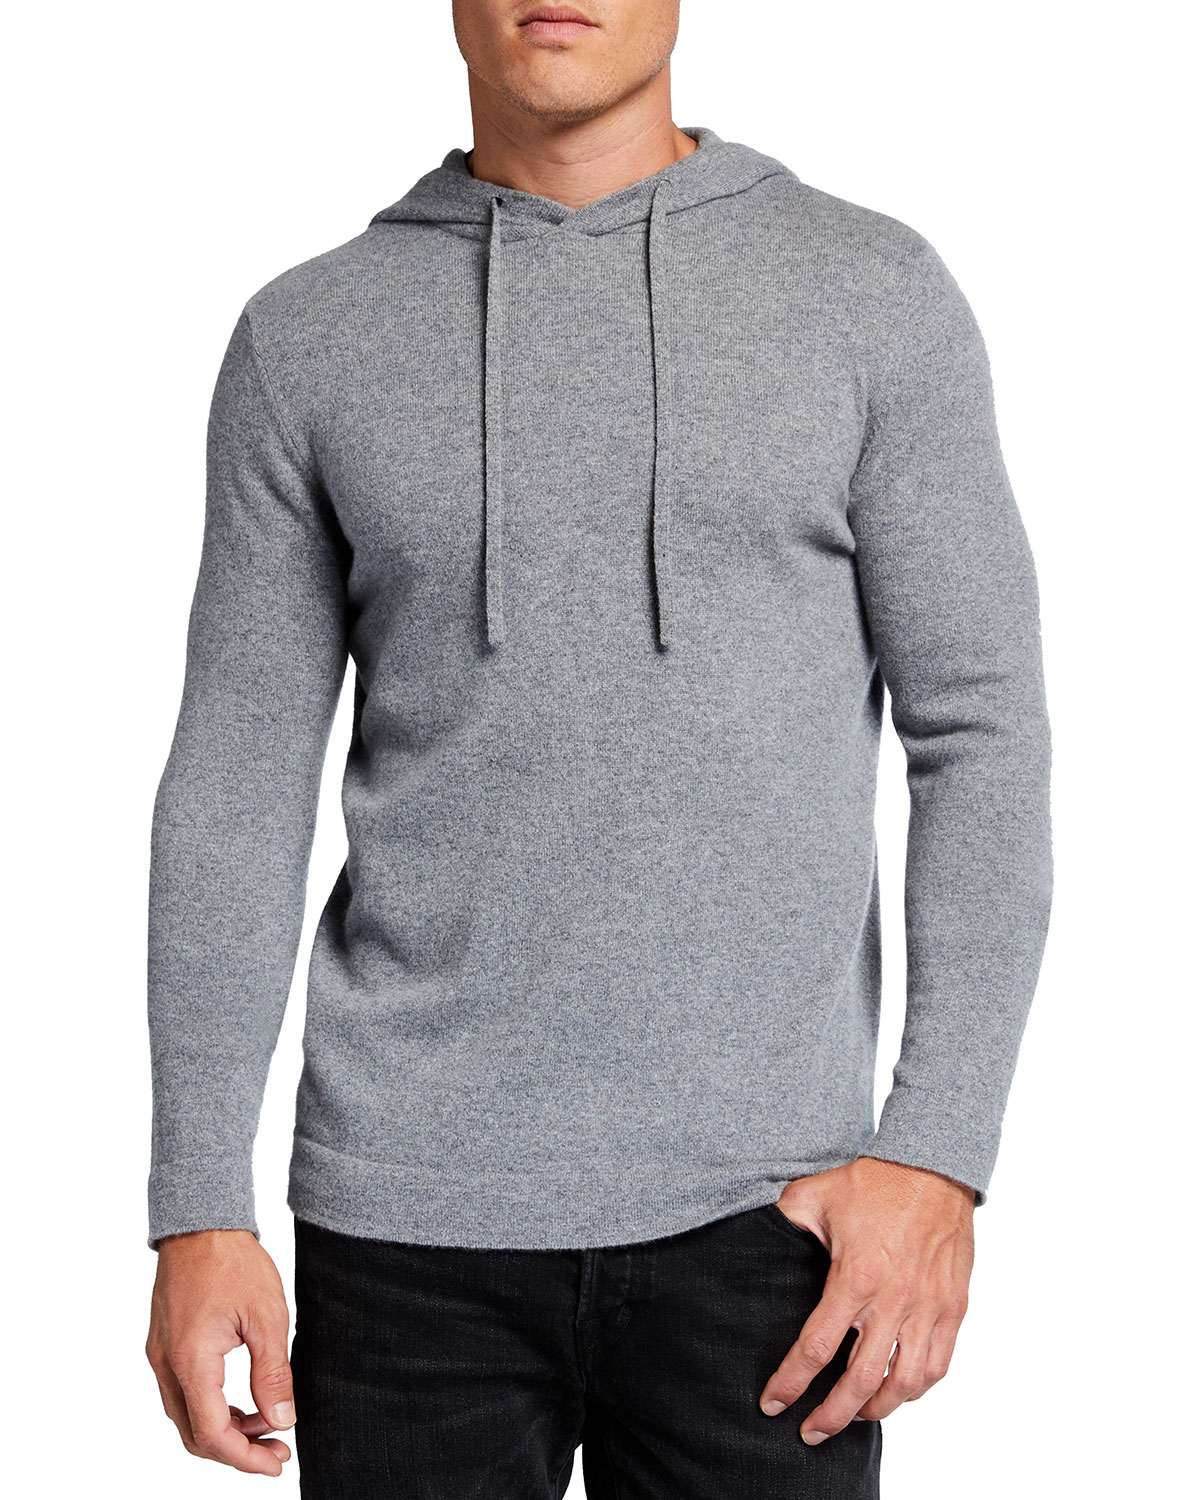 TSE for Neiman Marcus Men's Recycled Cashmere Hoodie Sweater